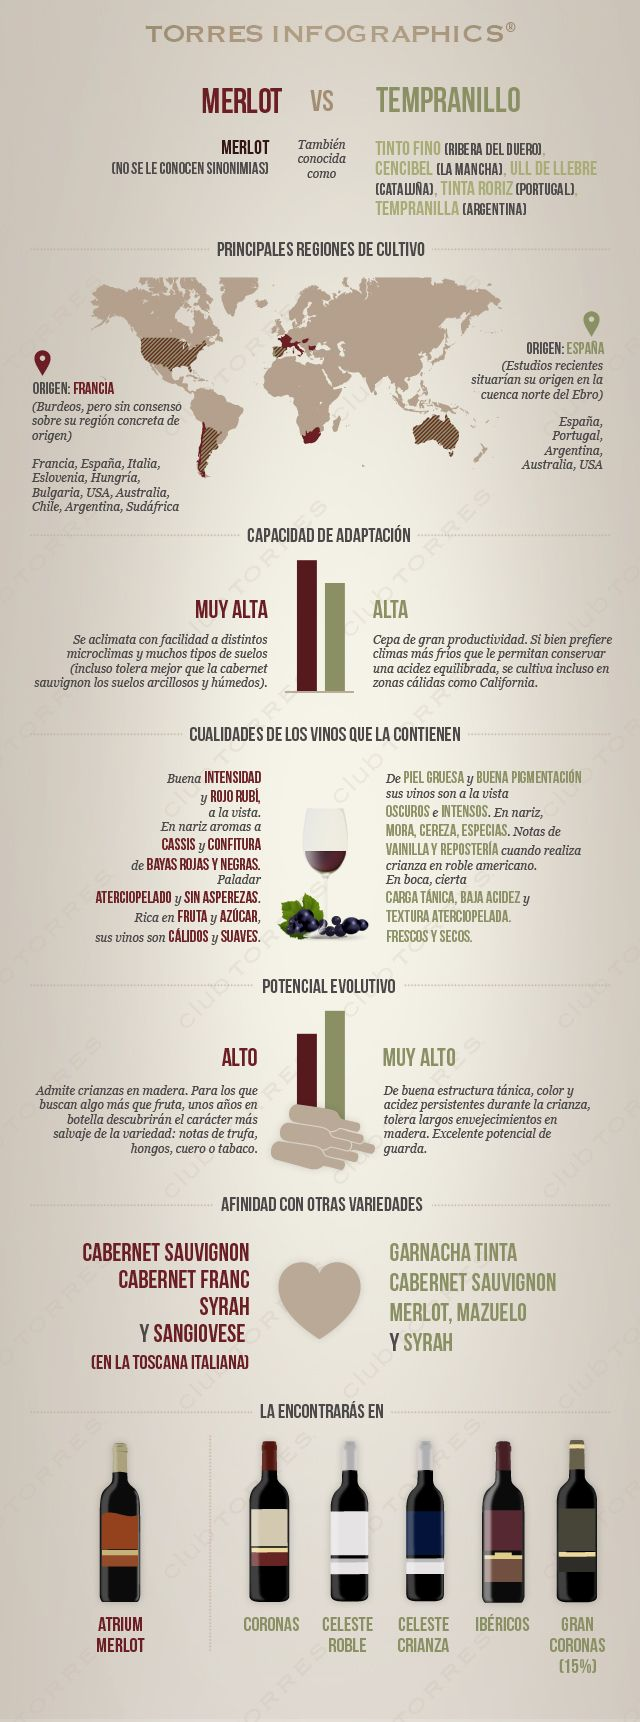 #Merlot vs #Tempranillo | by @bodegatorres